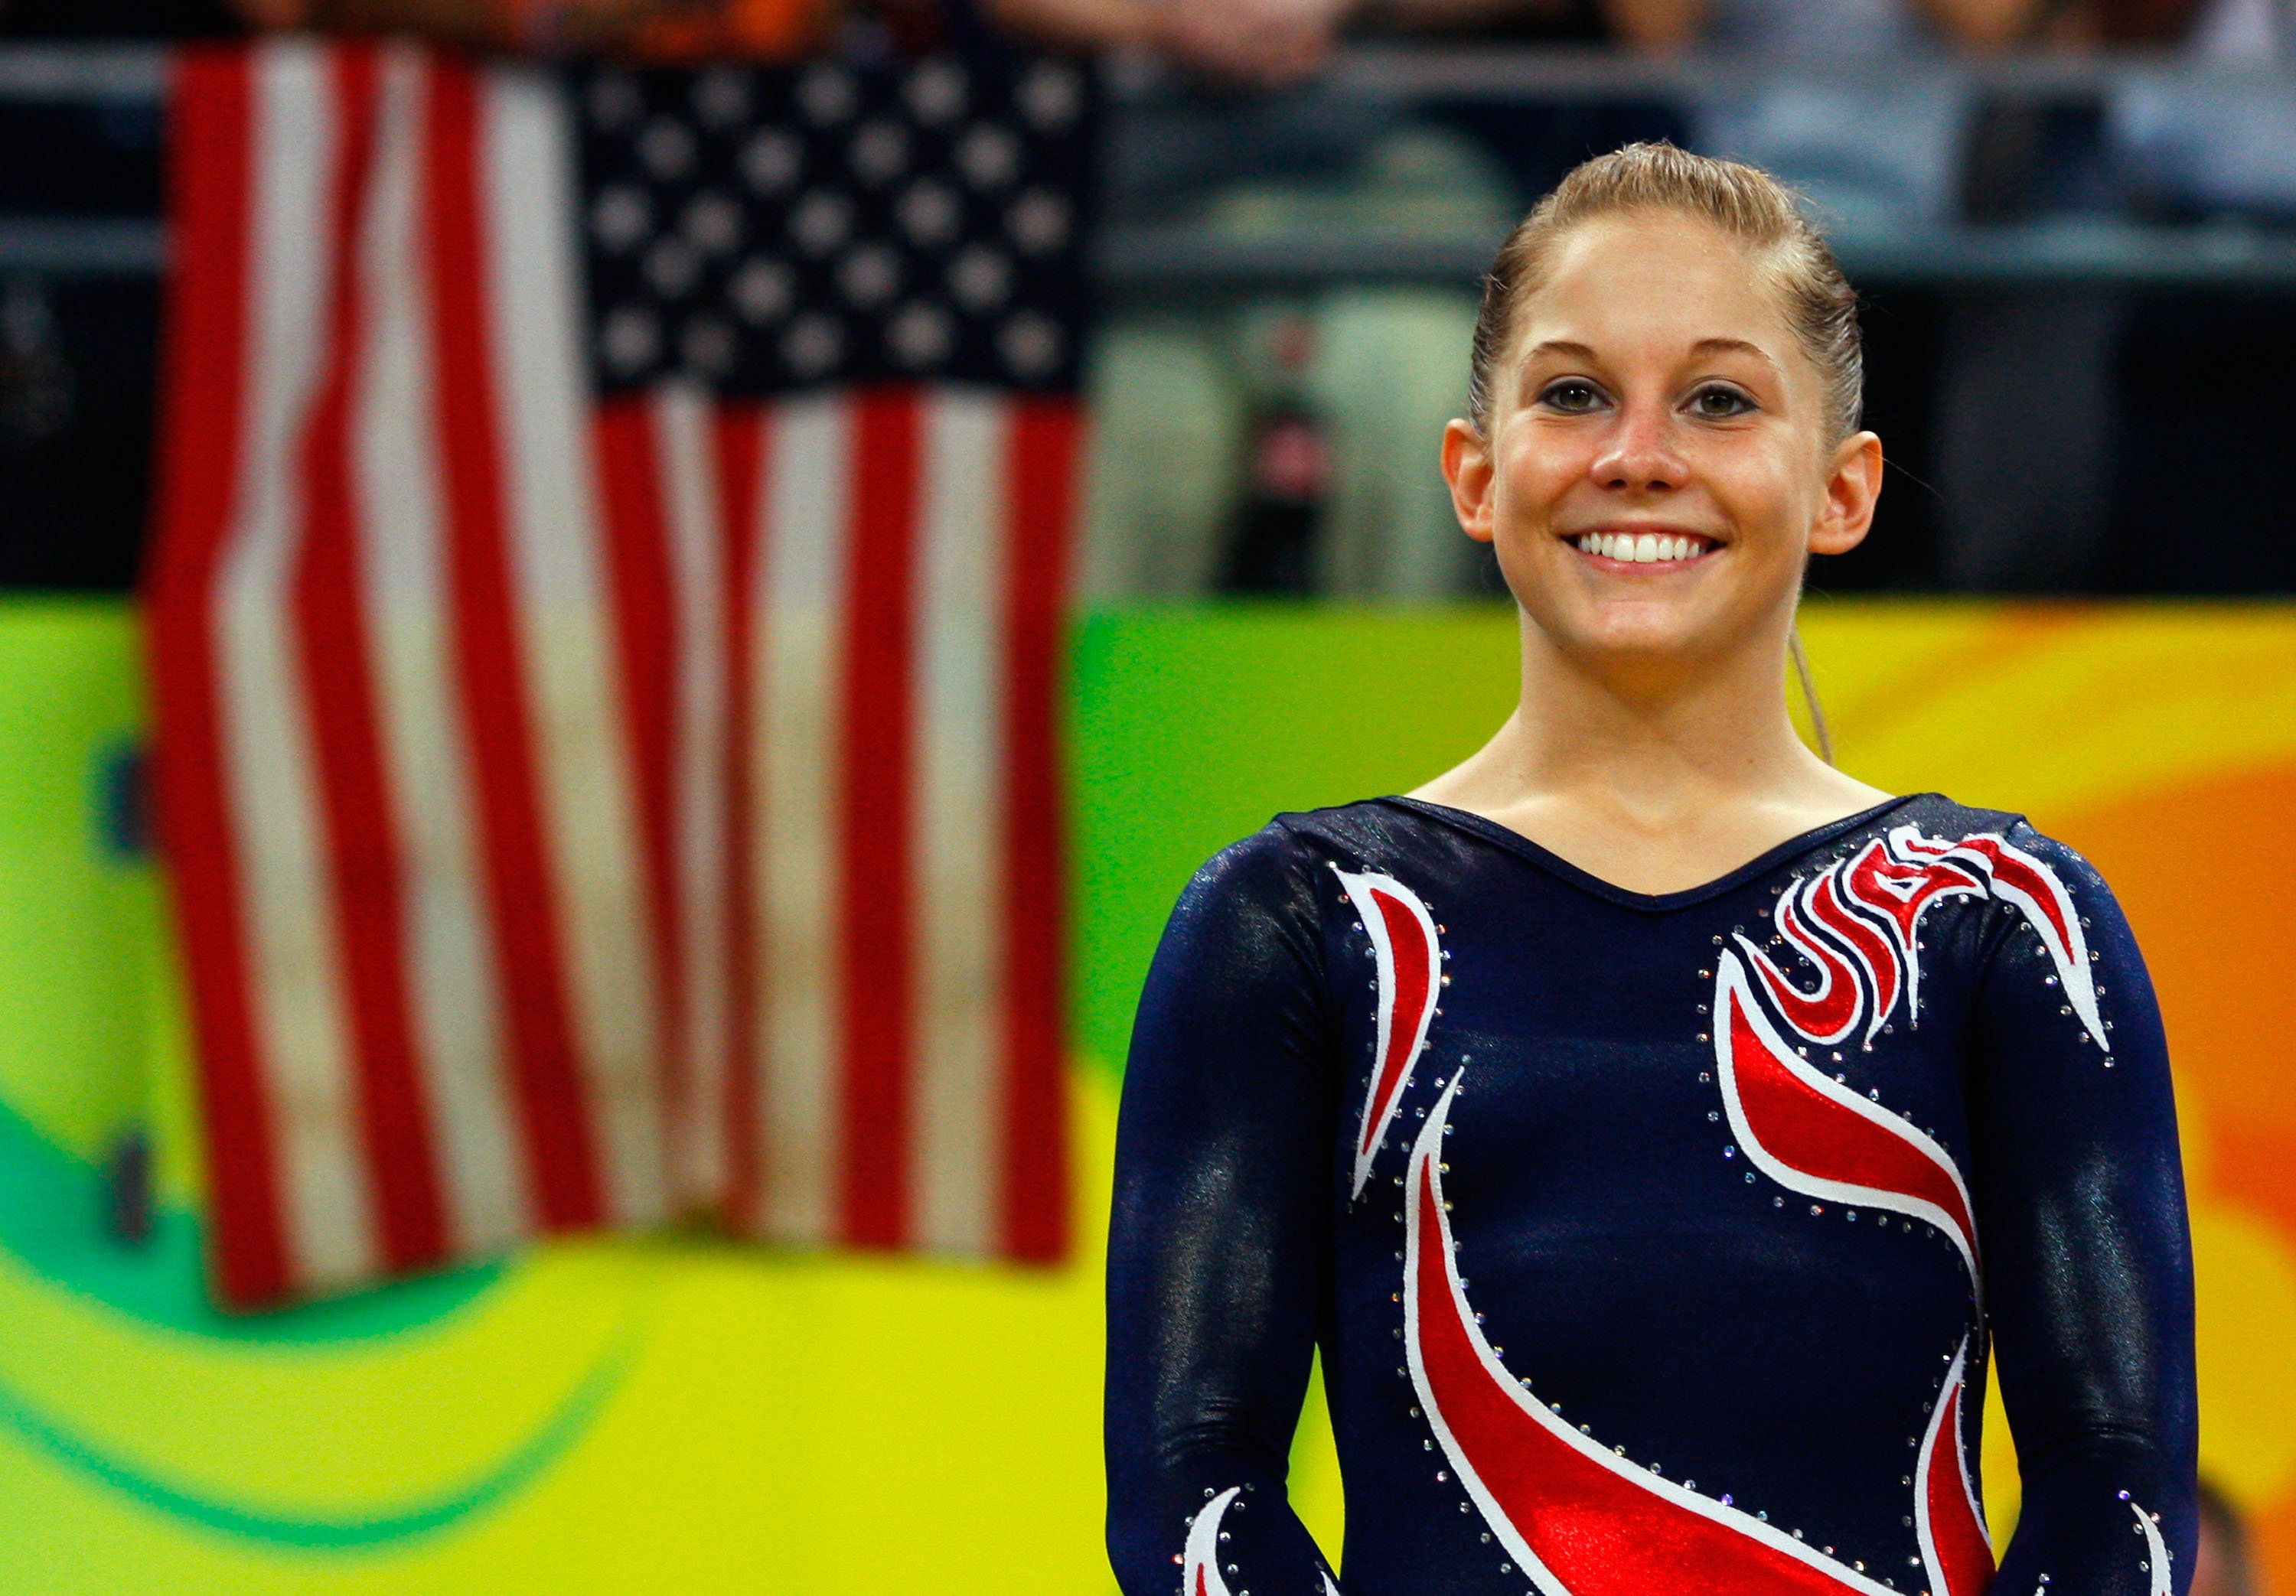 Shawn Johnson suffers miscarriage